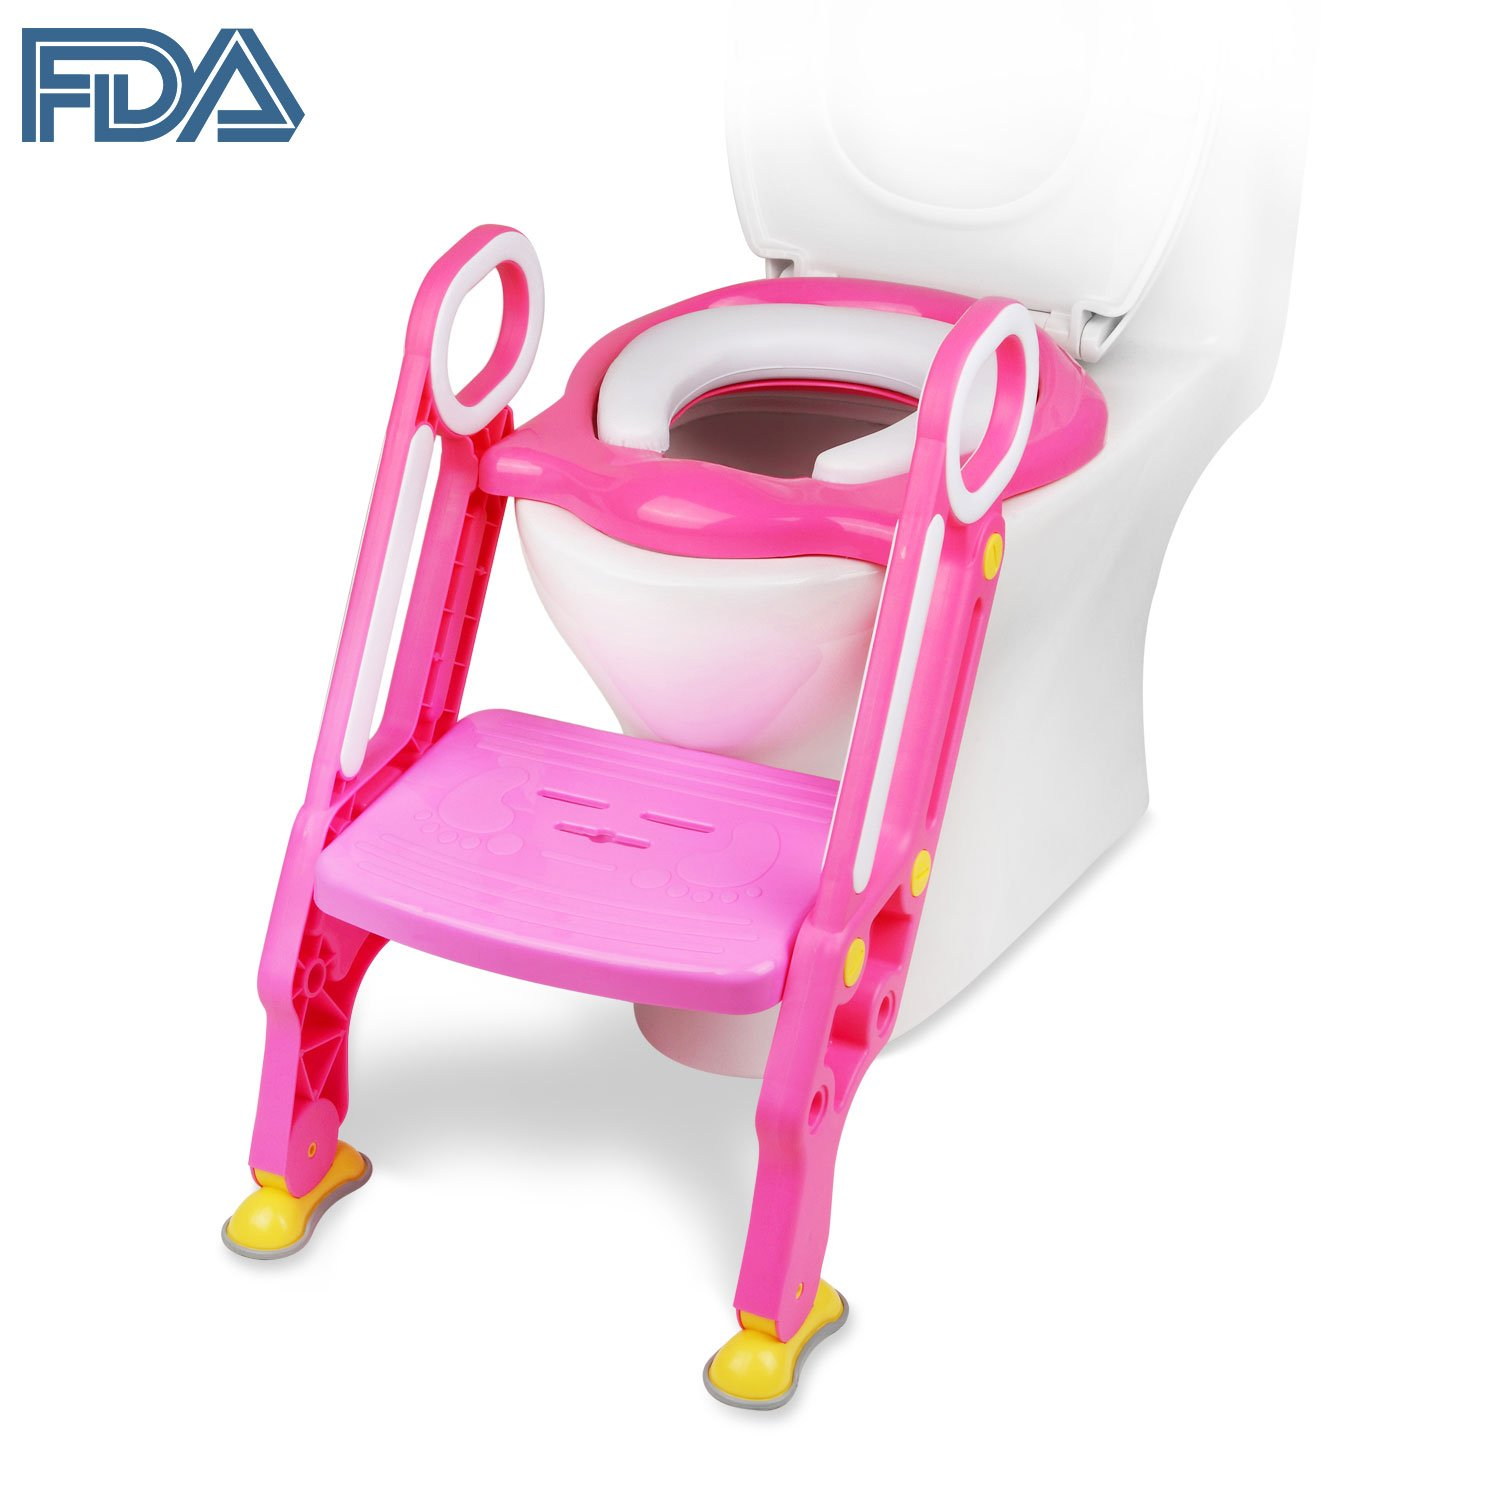 [FDA Certified] Ostrich Toilet Step Trainer Ladder for Kid and Baby, Children's Toilet Seat Chair, Toddlers Toilet Training Step Stool for Girl and Boy, Pink Coreykin